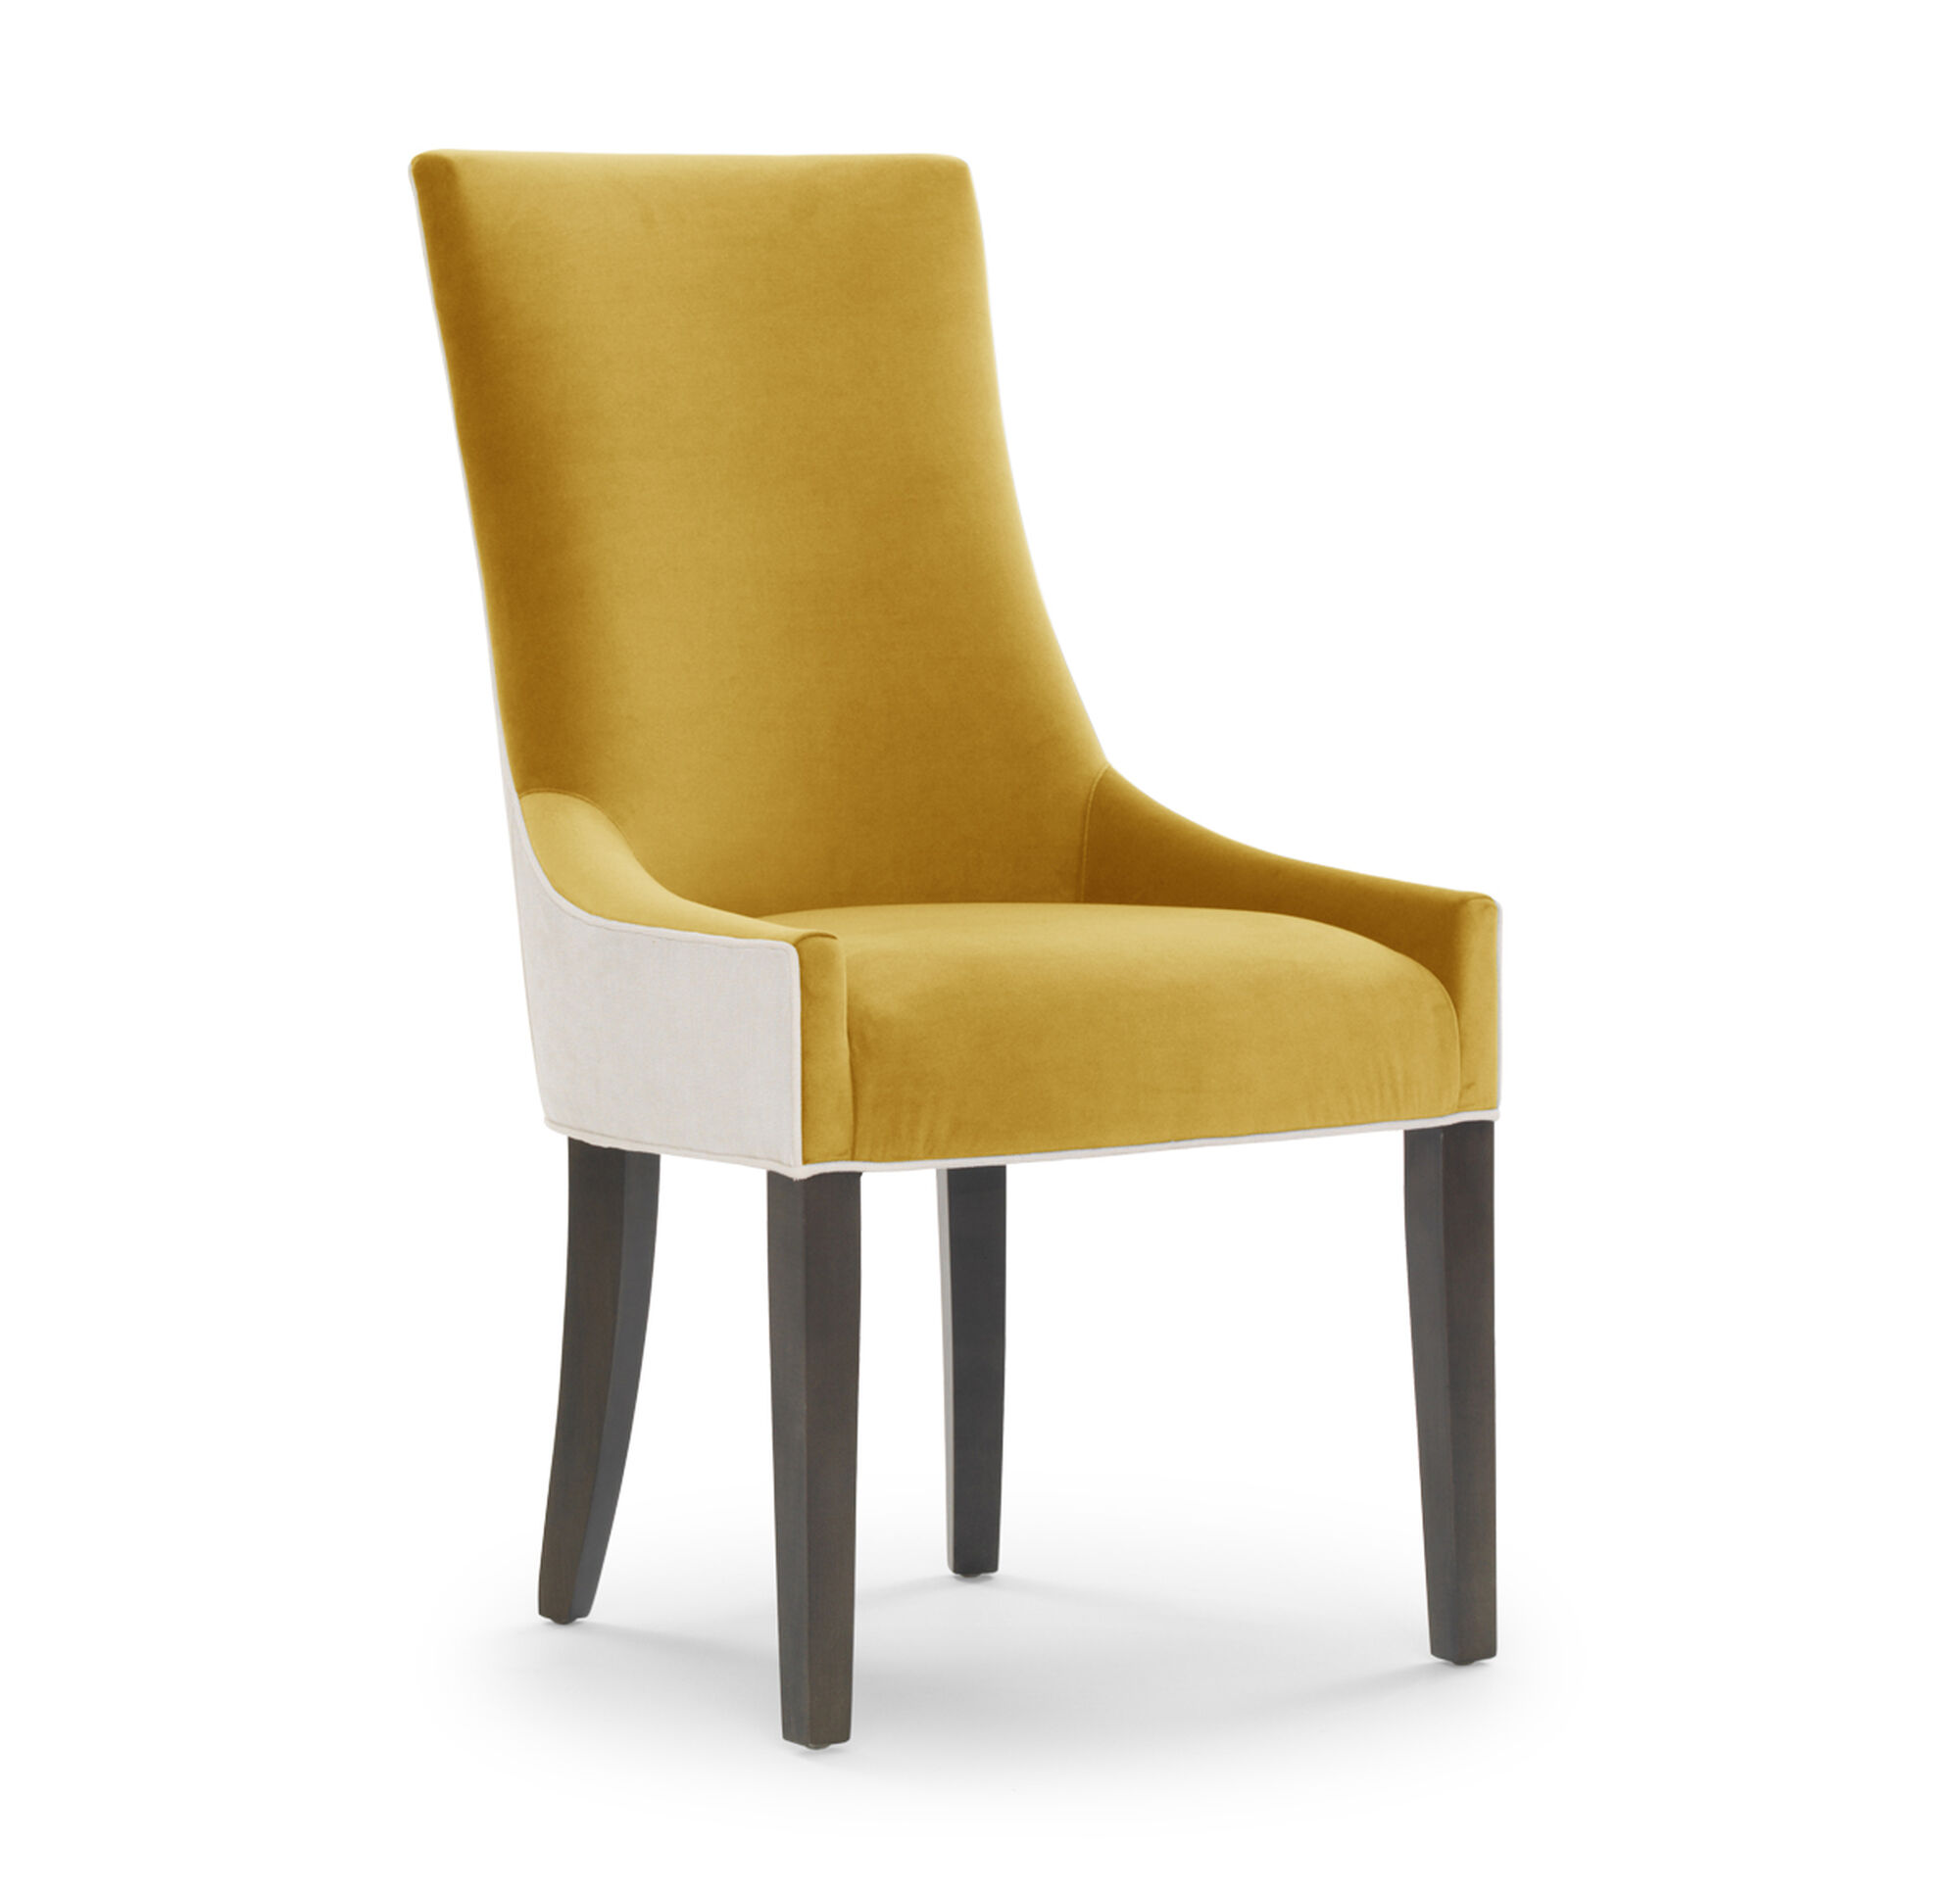 ada side dining chair hi res - Yellow Dining Chairs